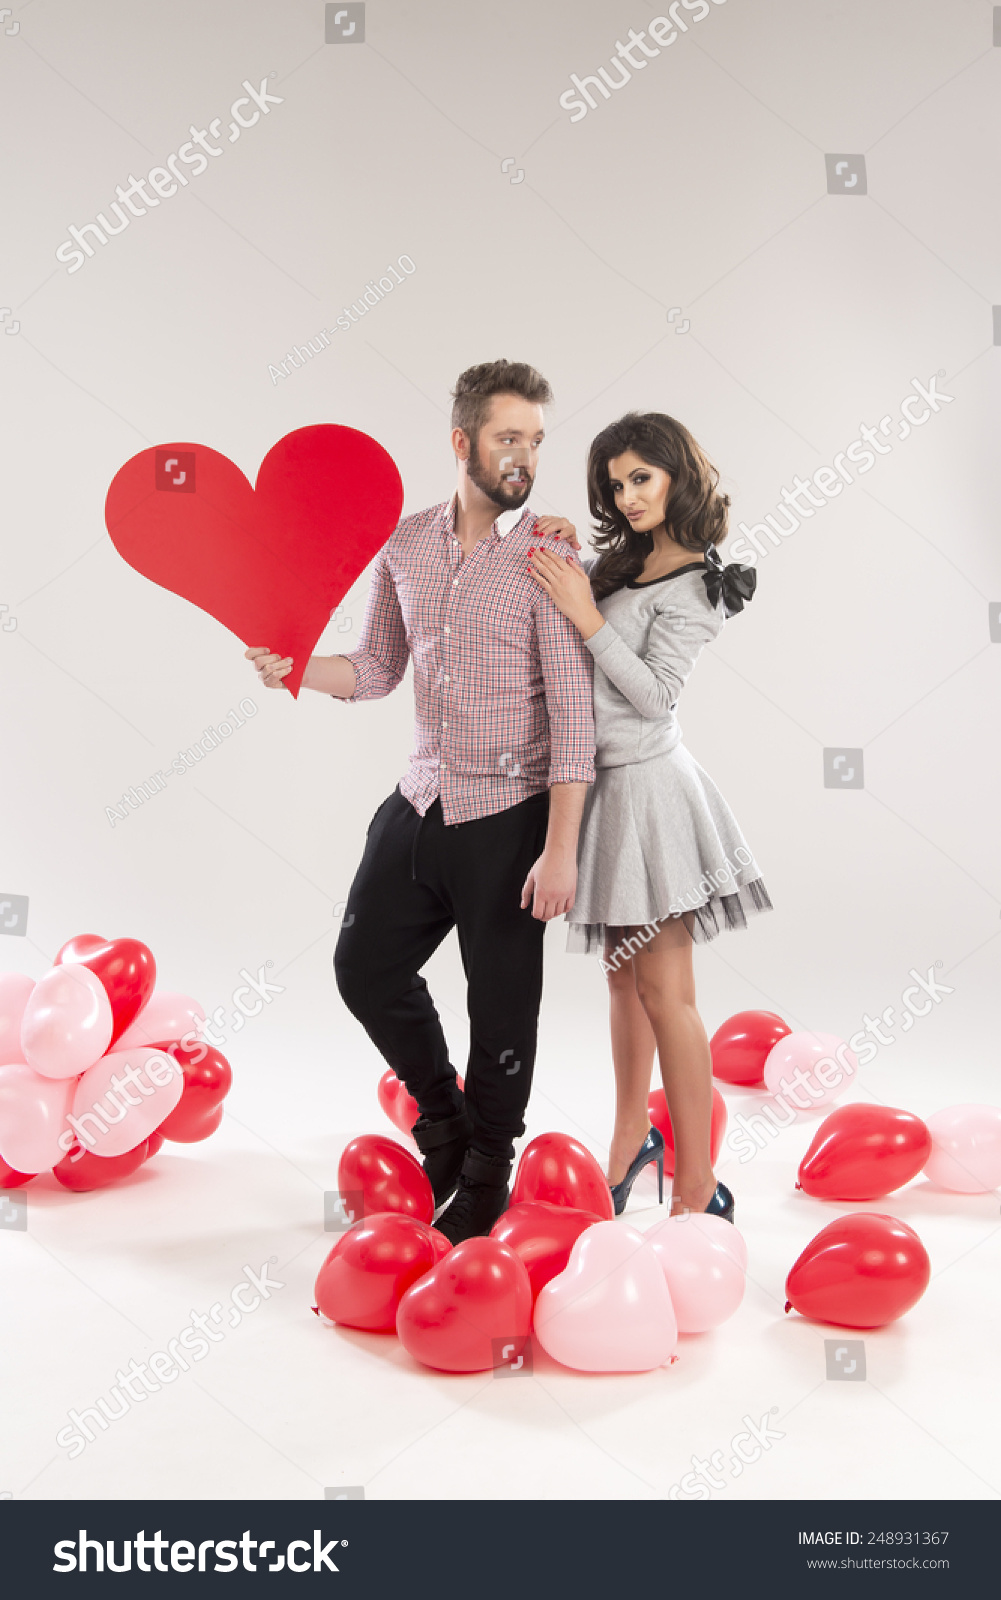 valentines day heart couple - photo #12